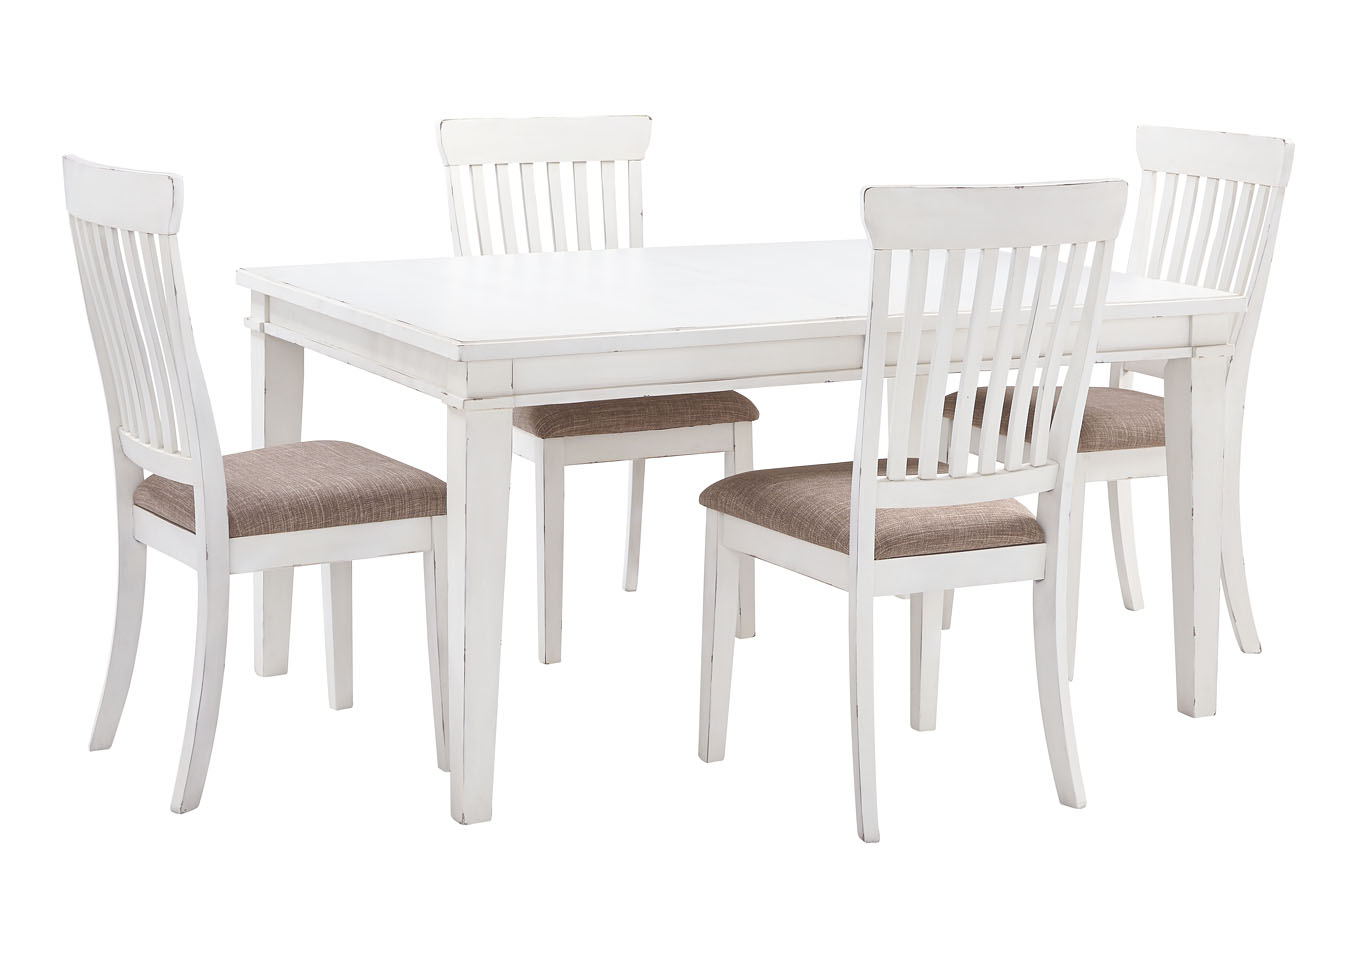 White Dining Room Chair R A Ahner Furniture Danbeck White Dining Table Set W Dining Table